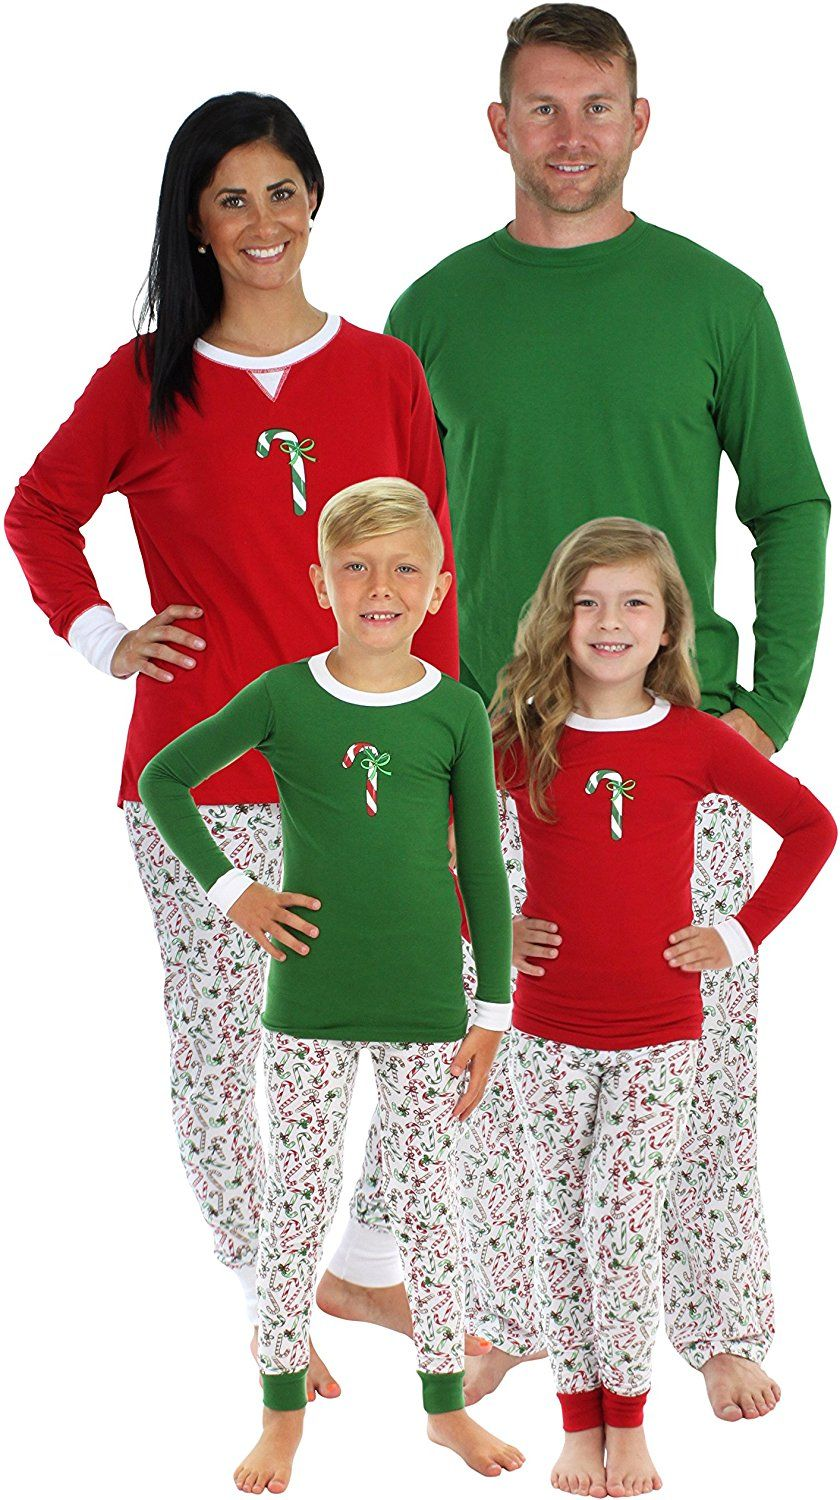 Sleepyheads Candy Cane Family Matching Pajama Set Kids